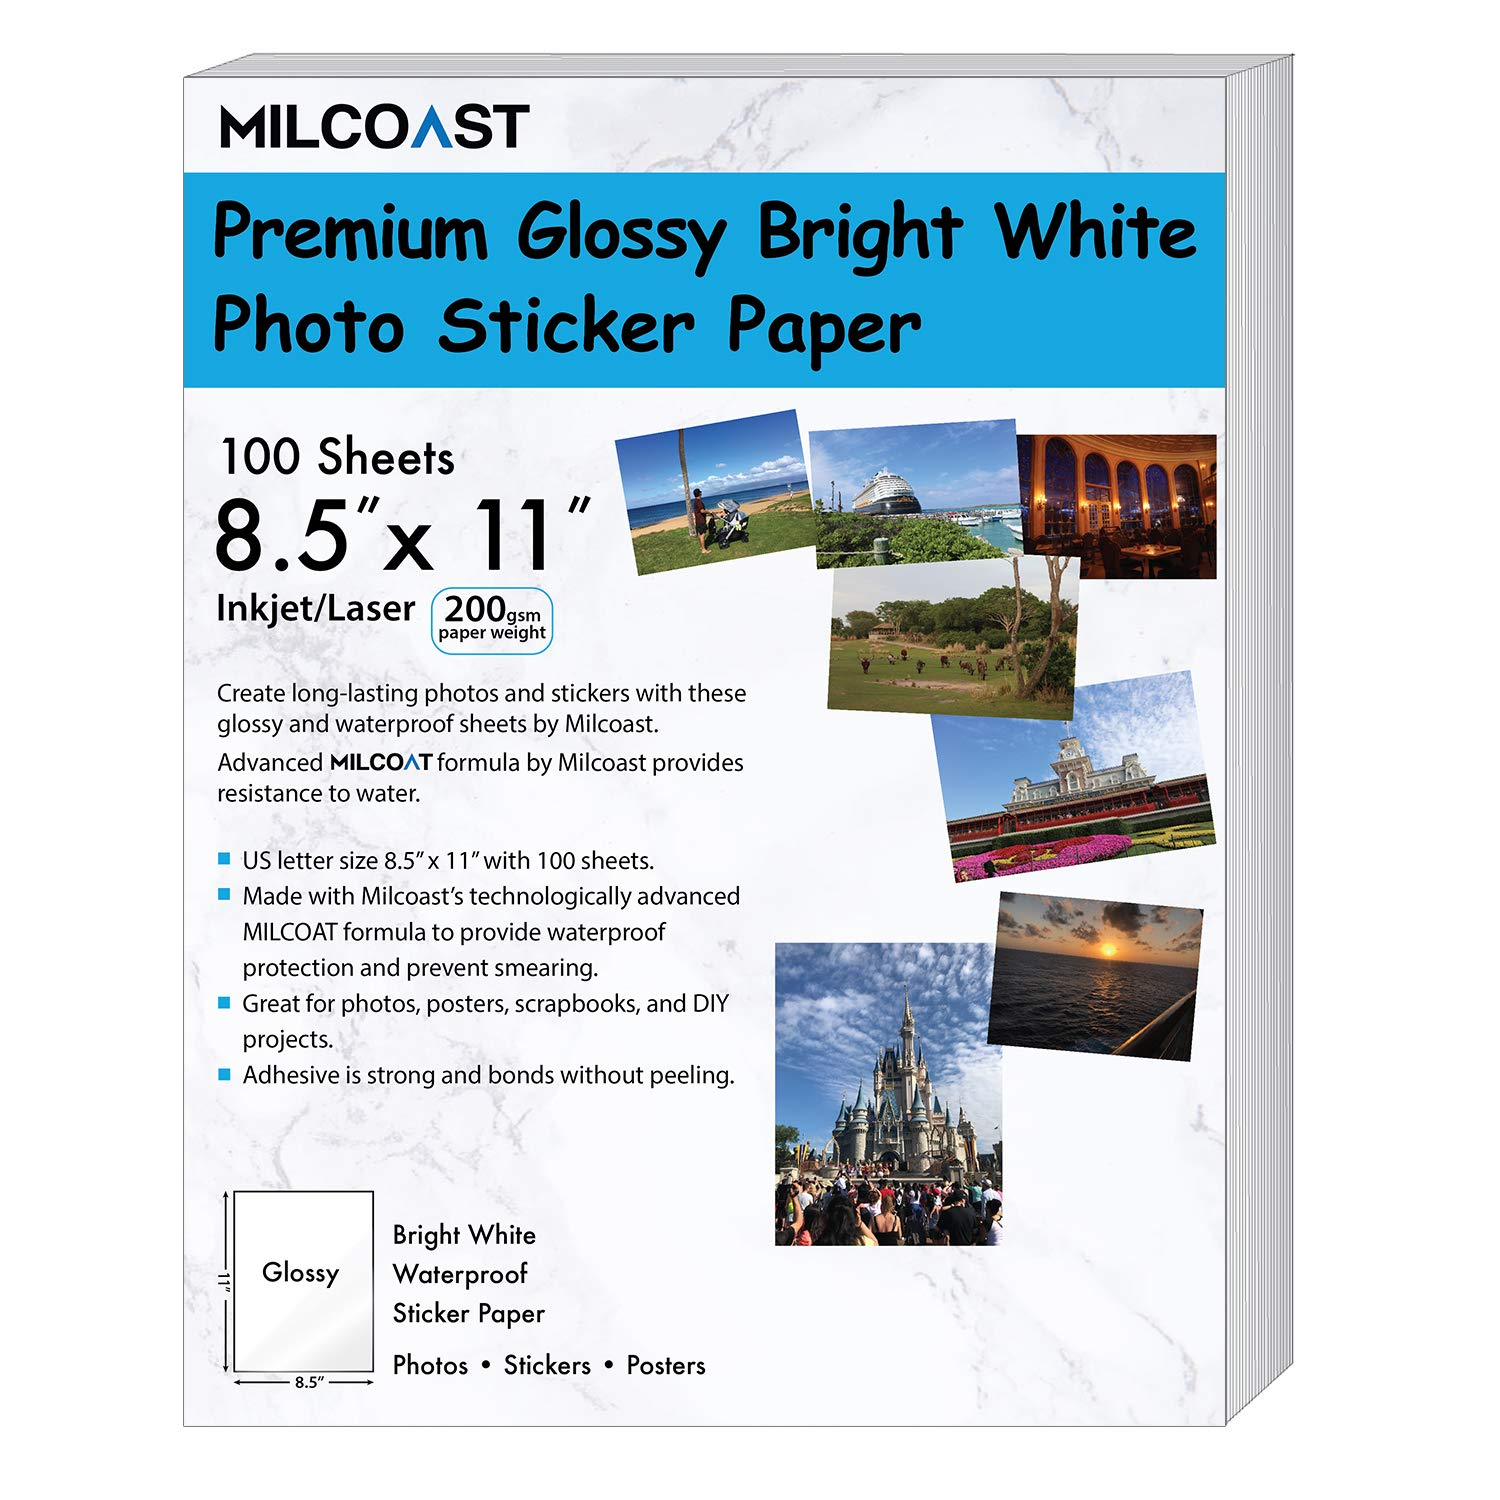 Milcoast Glossy Full Sheet 8.5'' x 11'' Waterproof Adhesive Bright White Photo Paper - 200 GSM Weight, Inkjet/Laser Printer Compatible - 100 Sheets